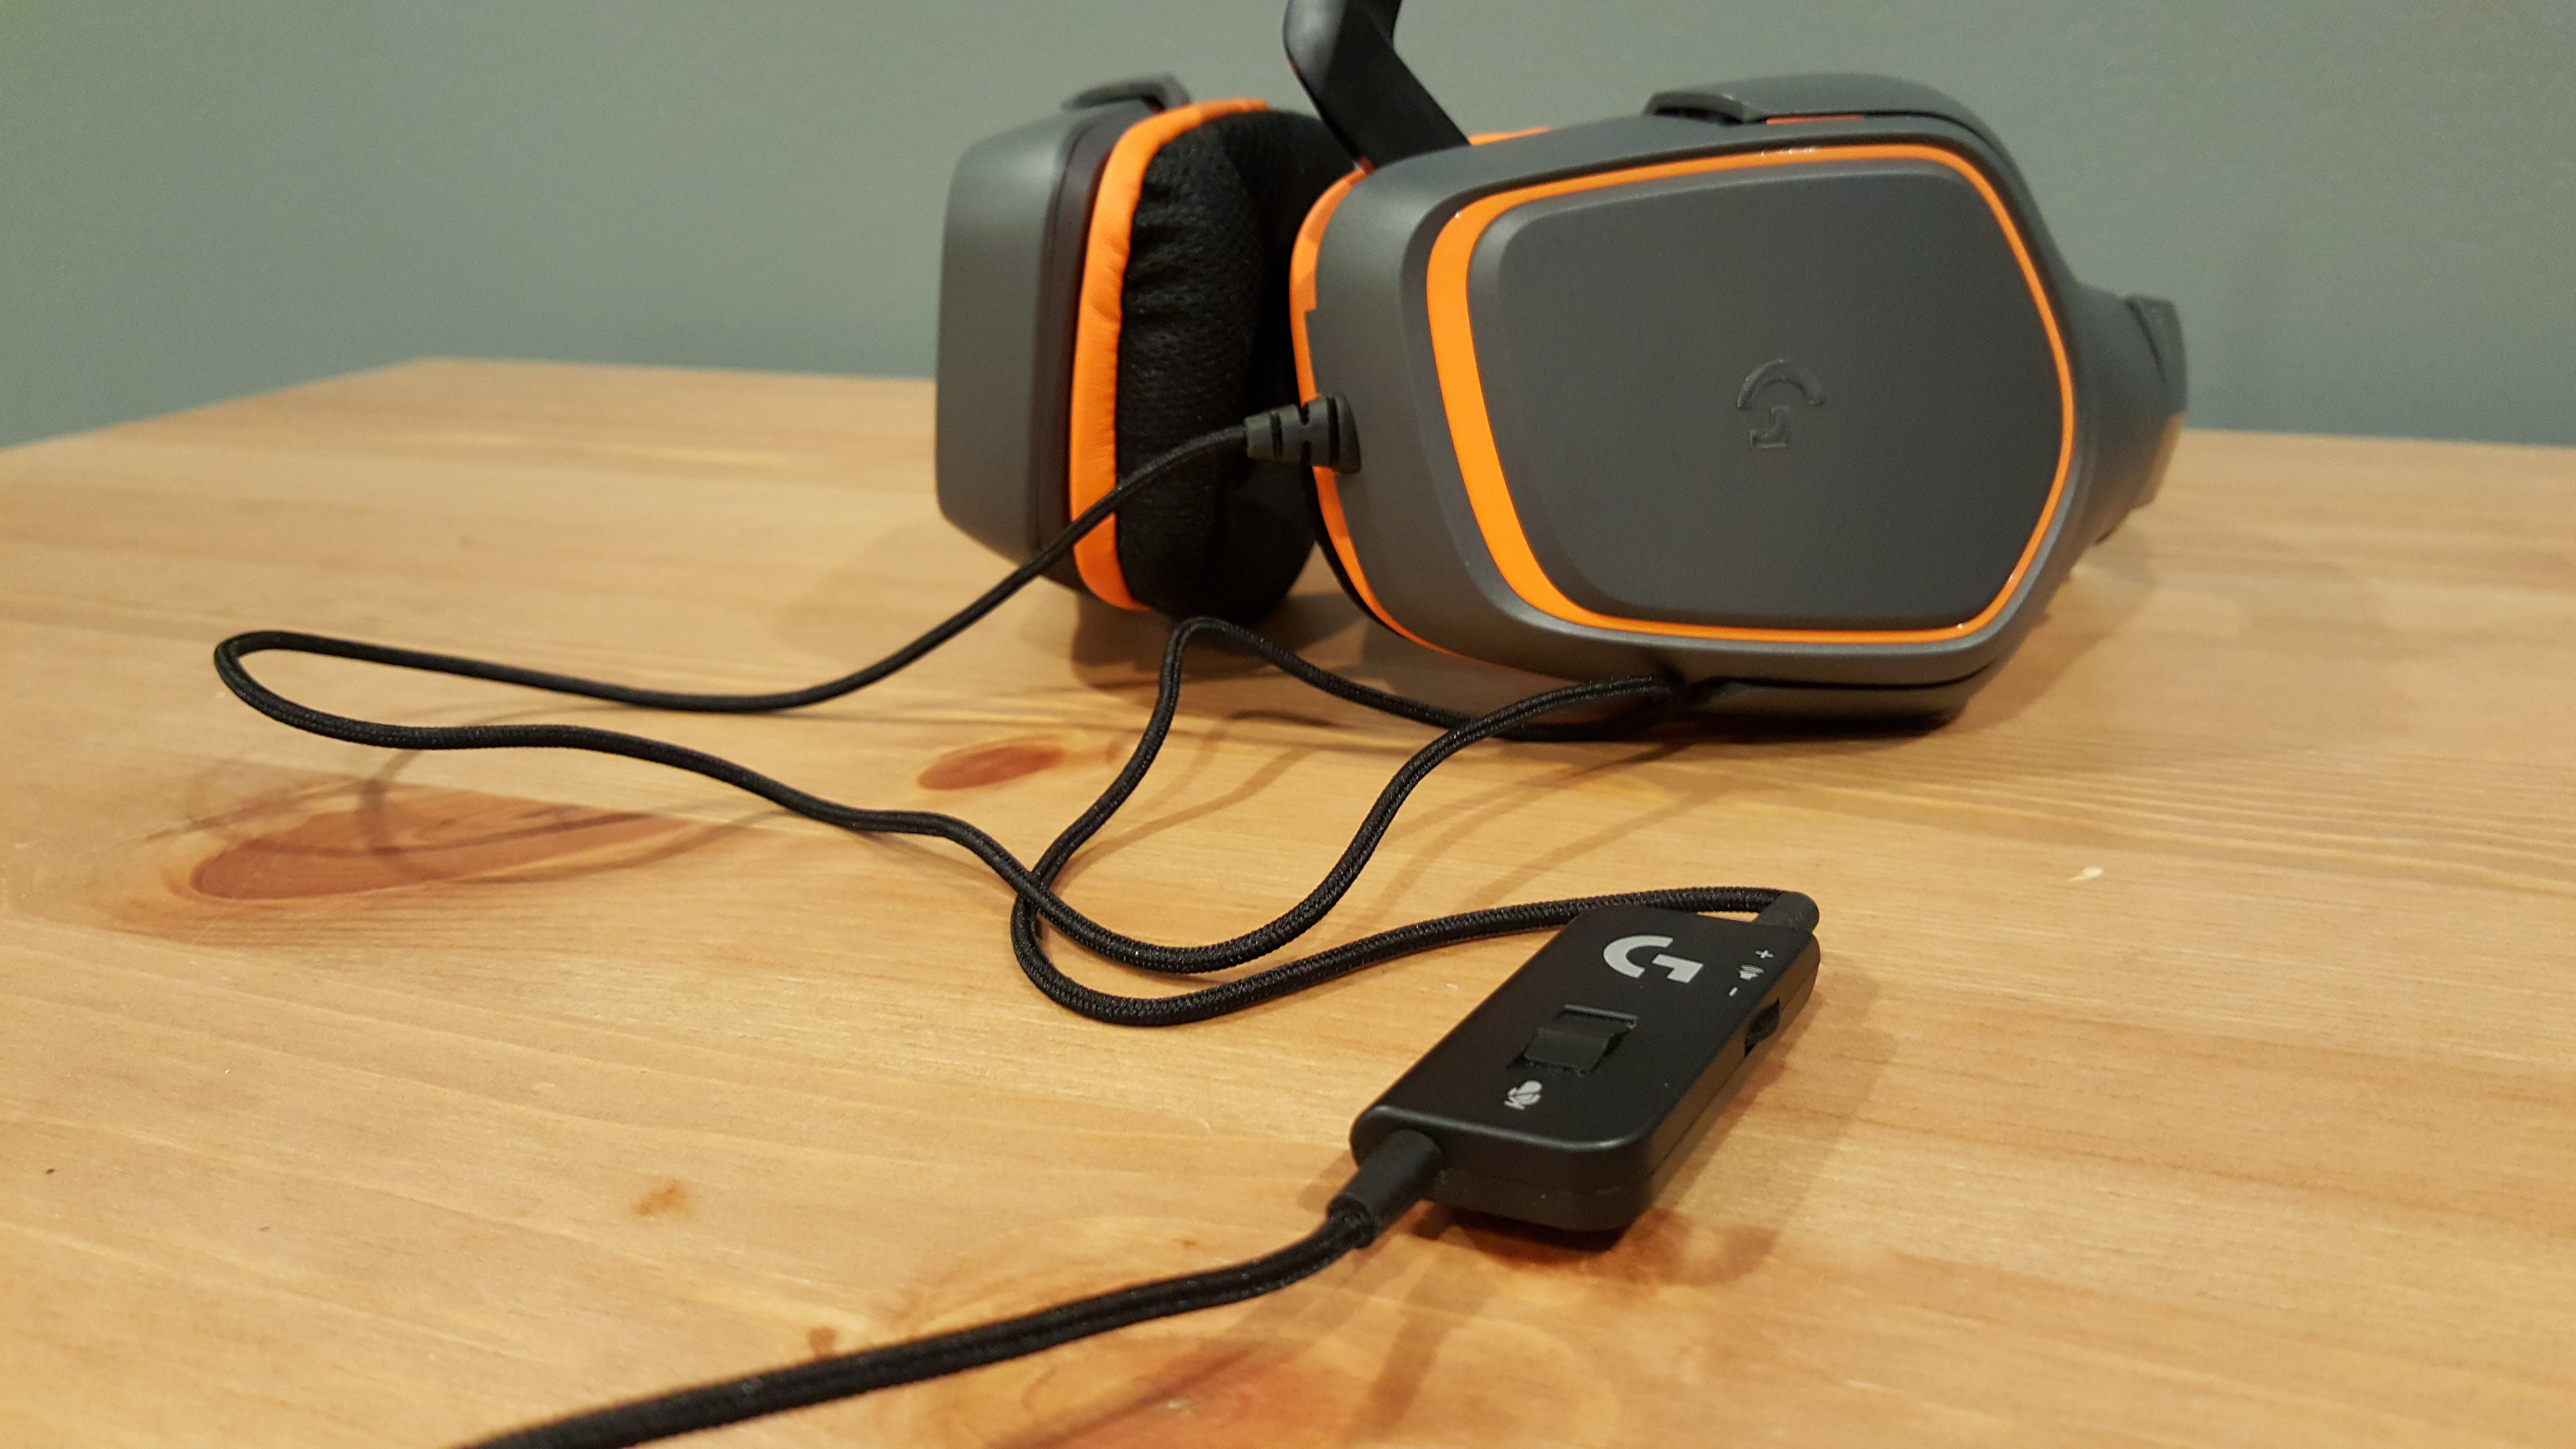 Logitech G231 Prodigy review: One more budget-friendly